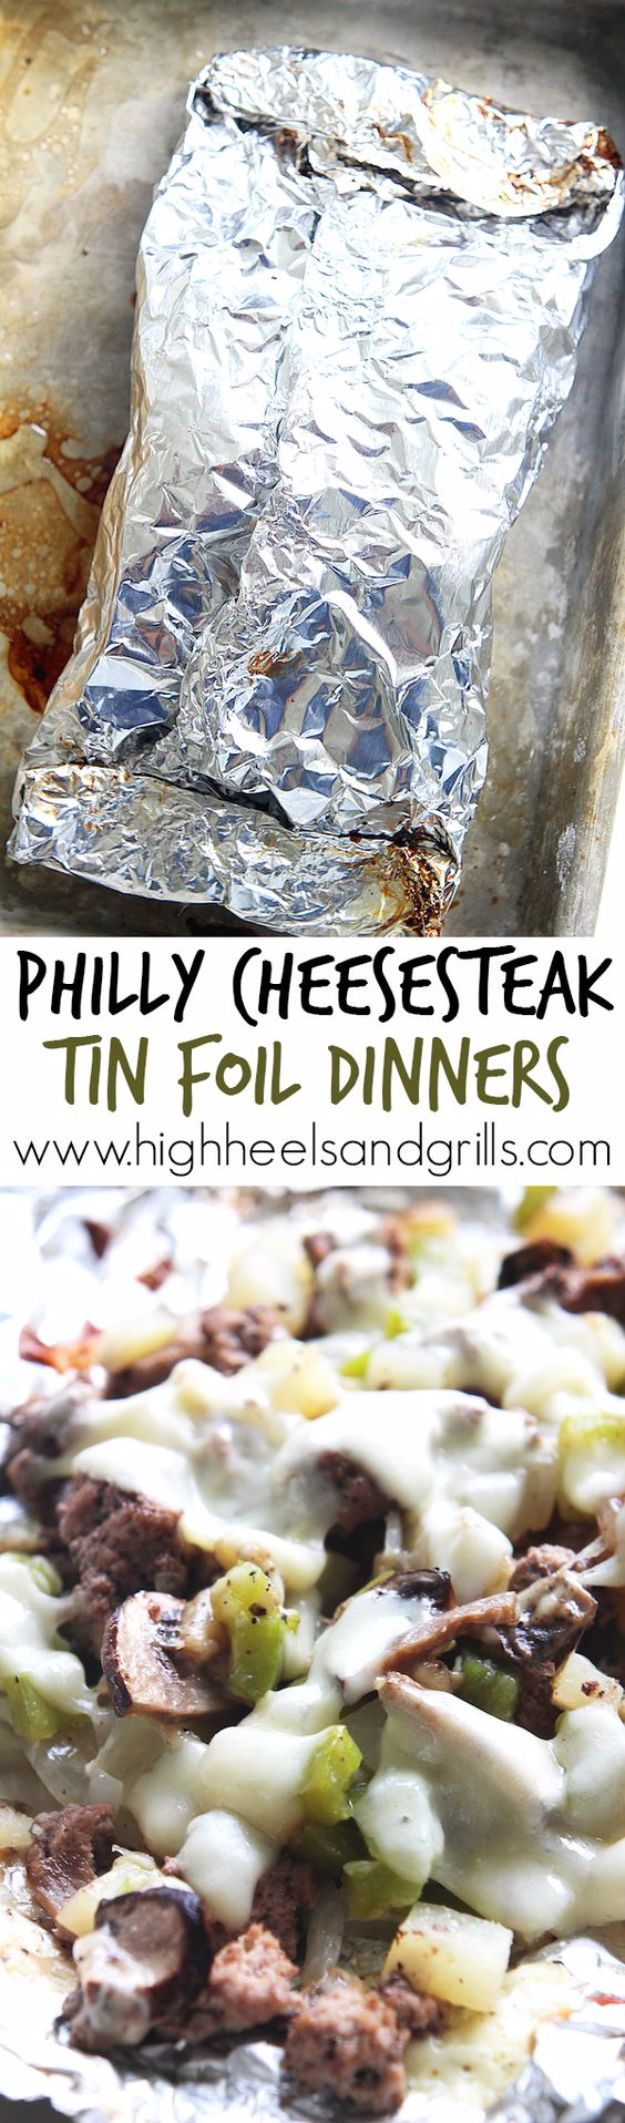 Tin Foil Camping Recipes - Philly Cheese Steak Sandwich Foil Pack - DIY Tin Foil Dinners, Ideas for Camping Trips and On Grill. Hamburger, Chicken, Healthy, Fish, Steak , Easy Make Ahead Recipe Ideas for the Campfire. Breakfast, Lunch, Dinner and Dessert, Snacks all Wrapped in Foil for Quick Cooking http://diyjoy.com/tinfoil-camping-recipes